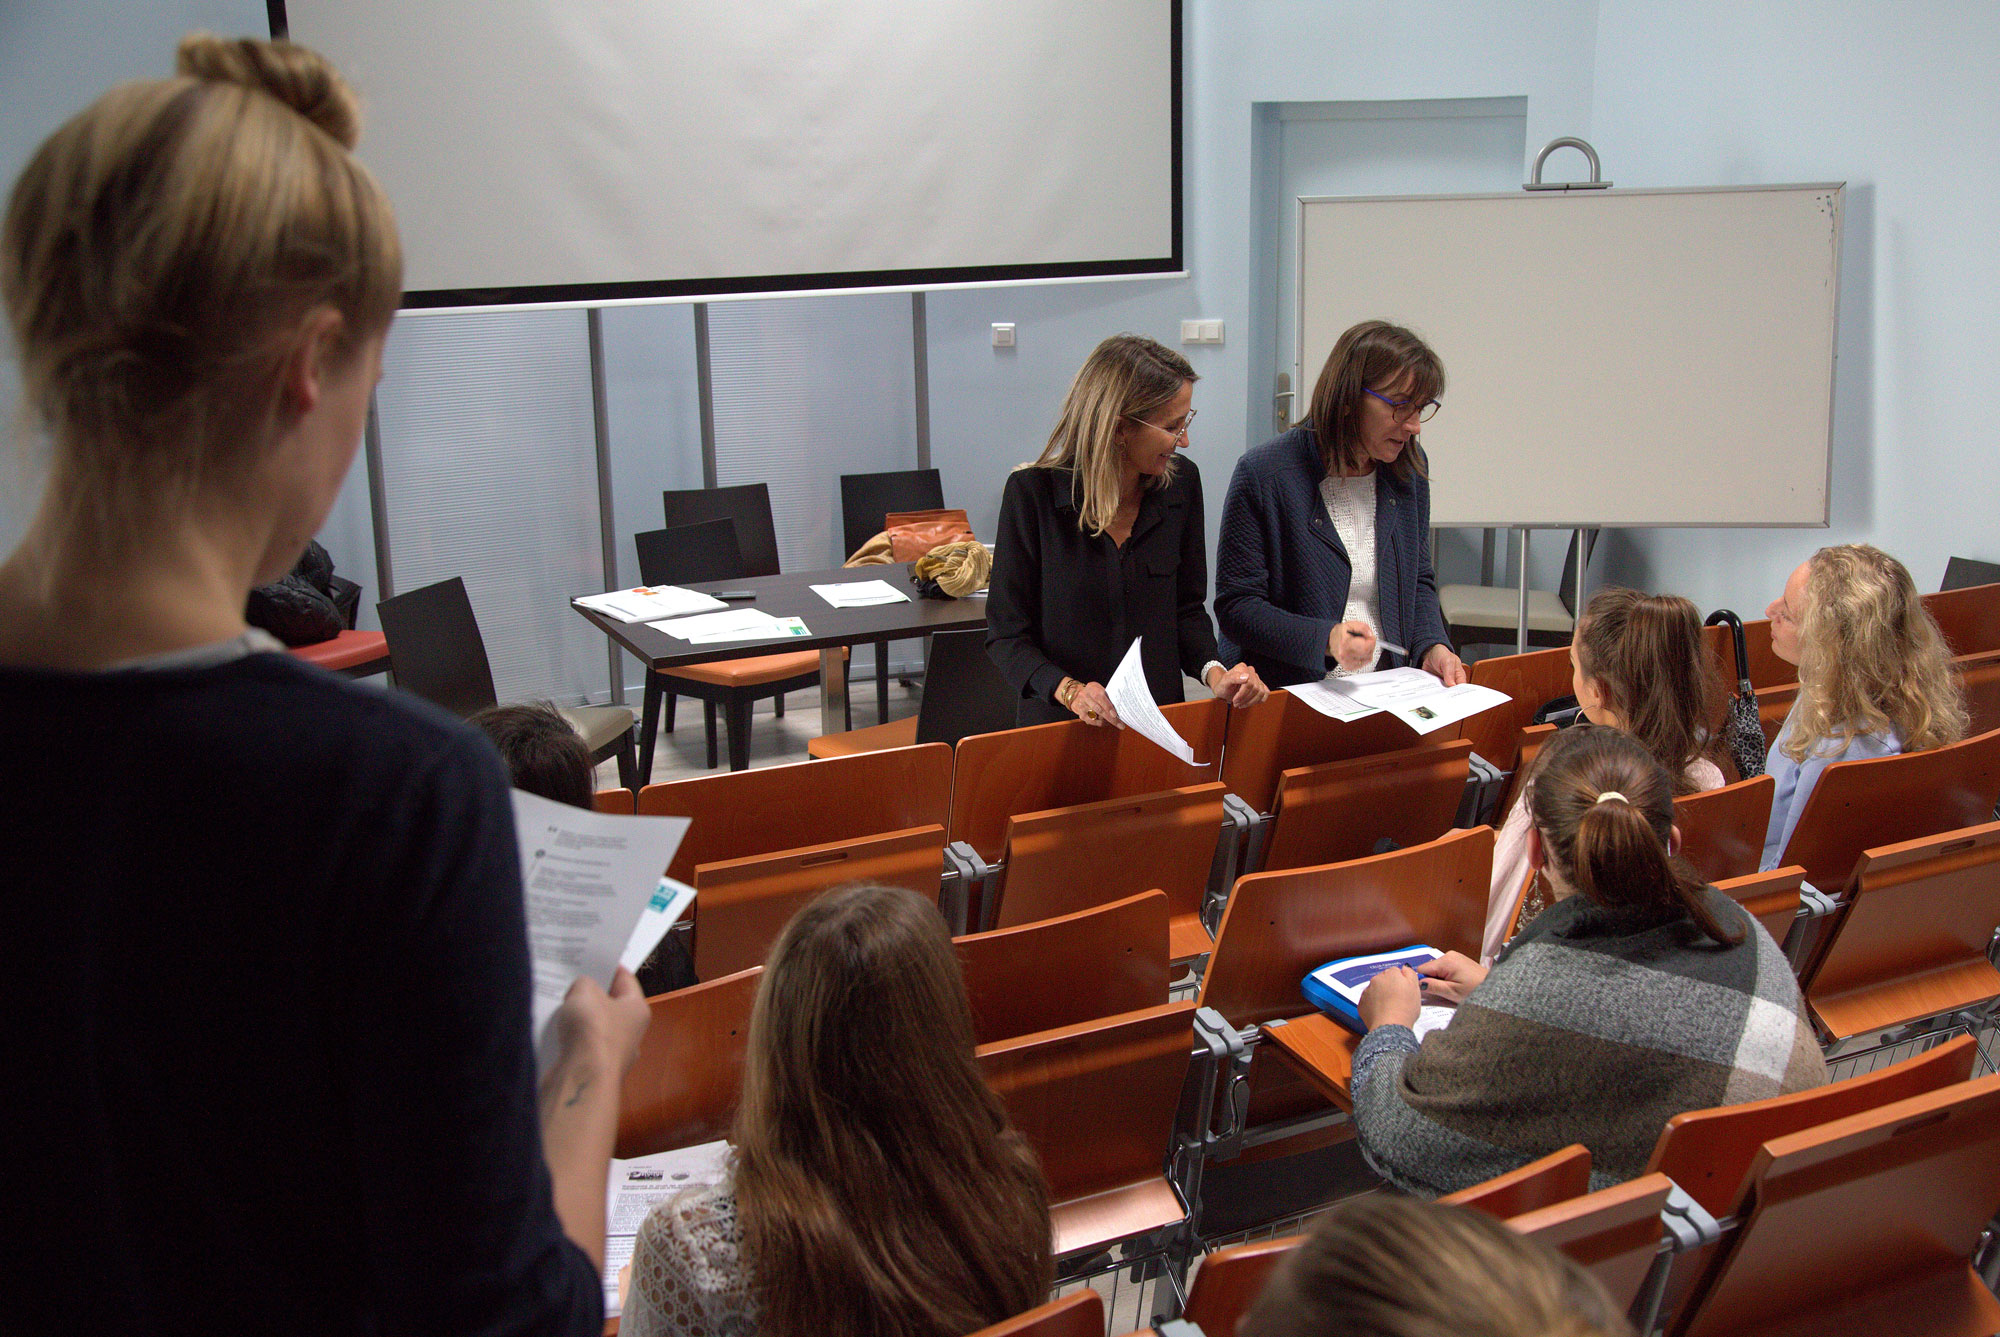 Forum inversé - filière QSE - Interfor Formation Alternance